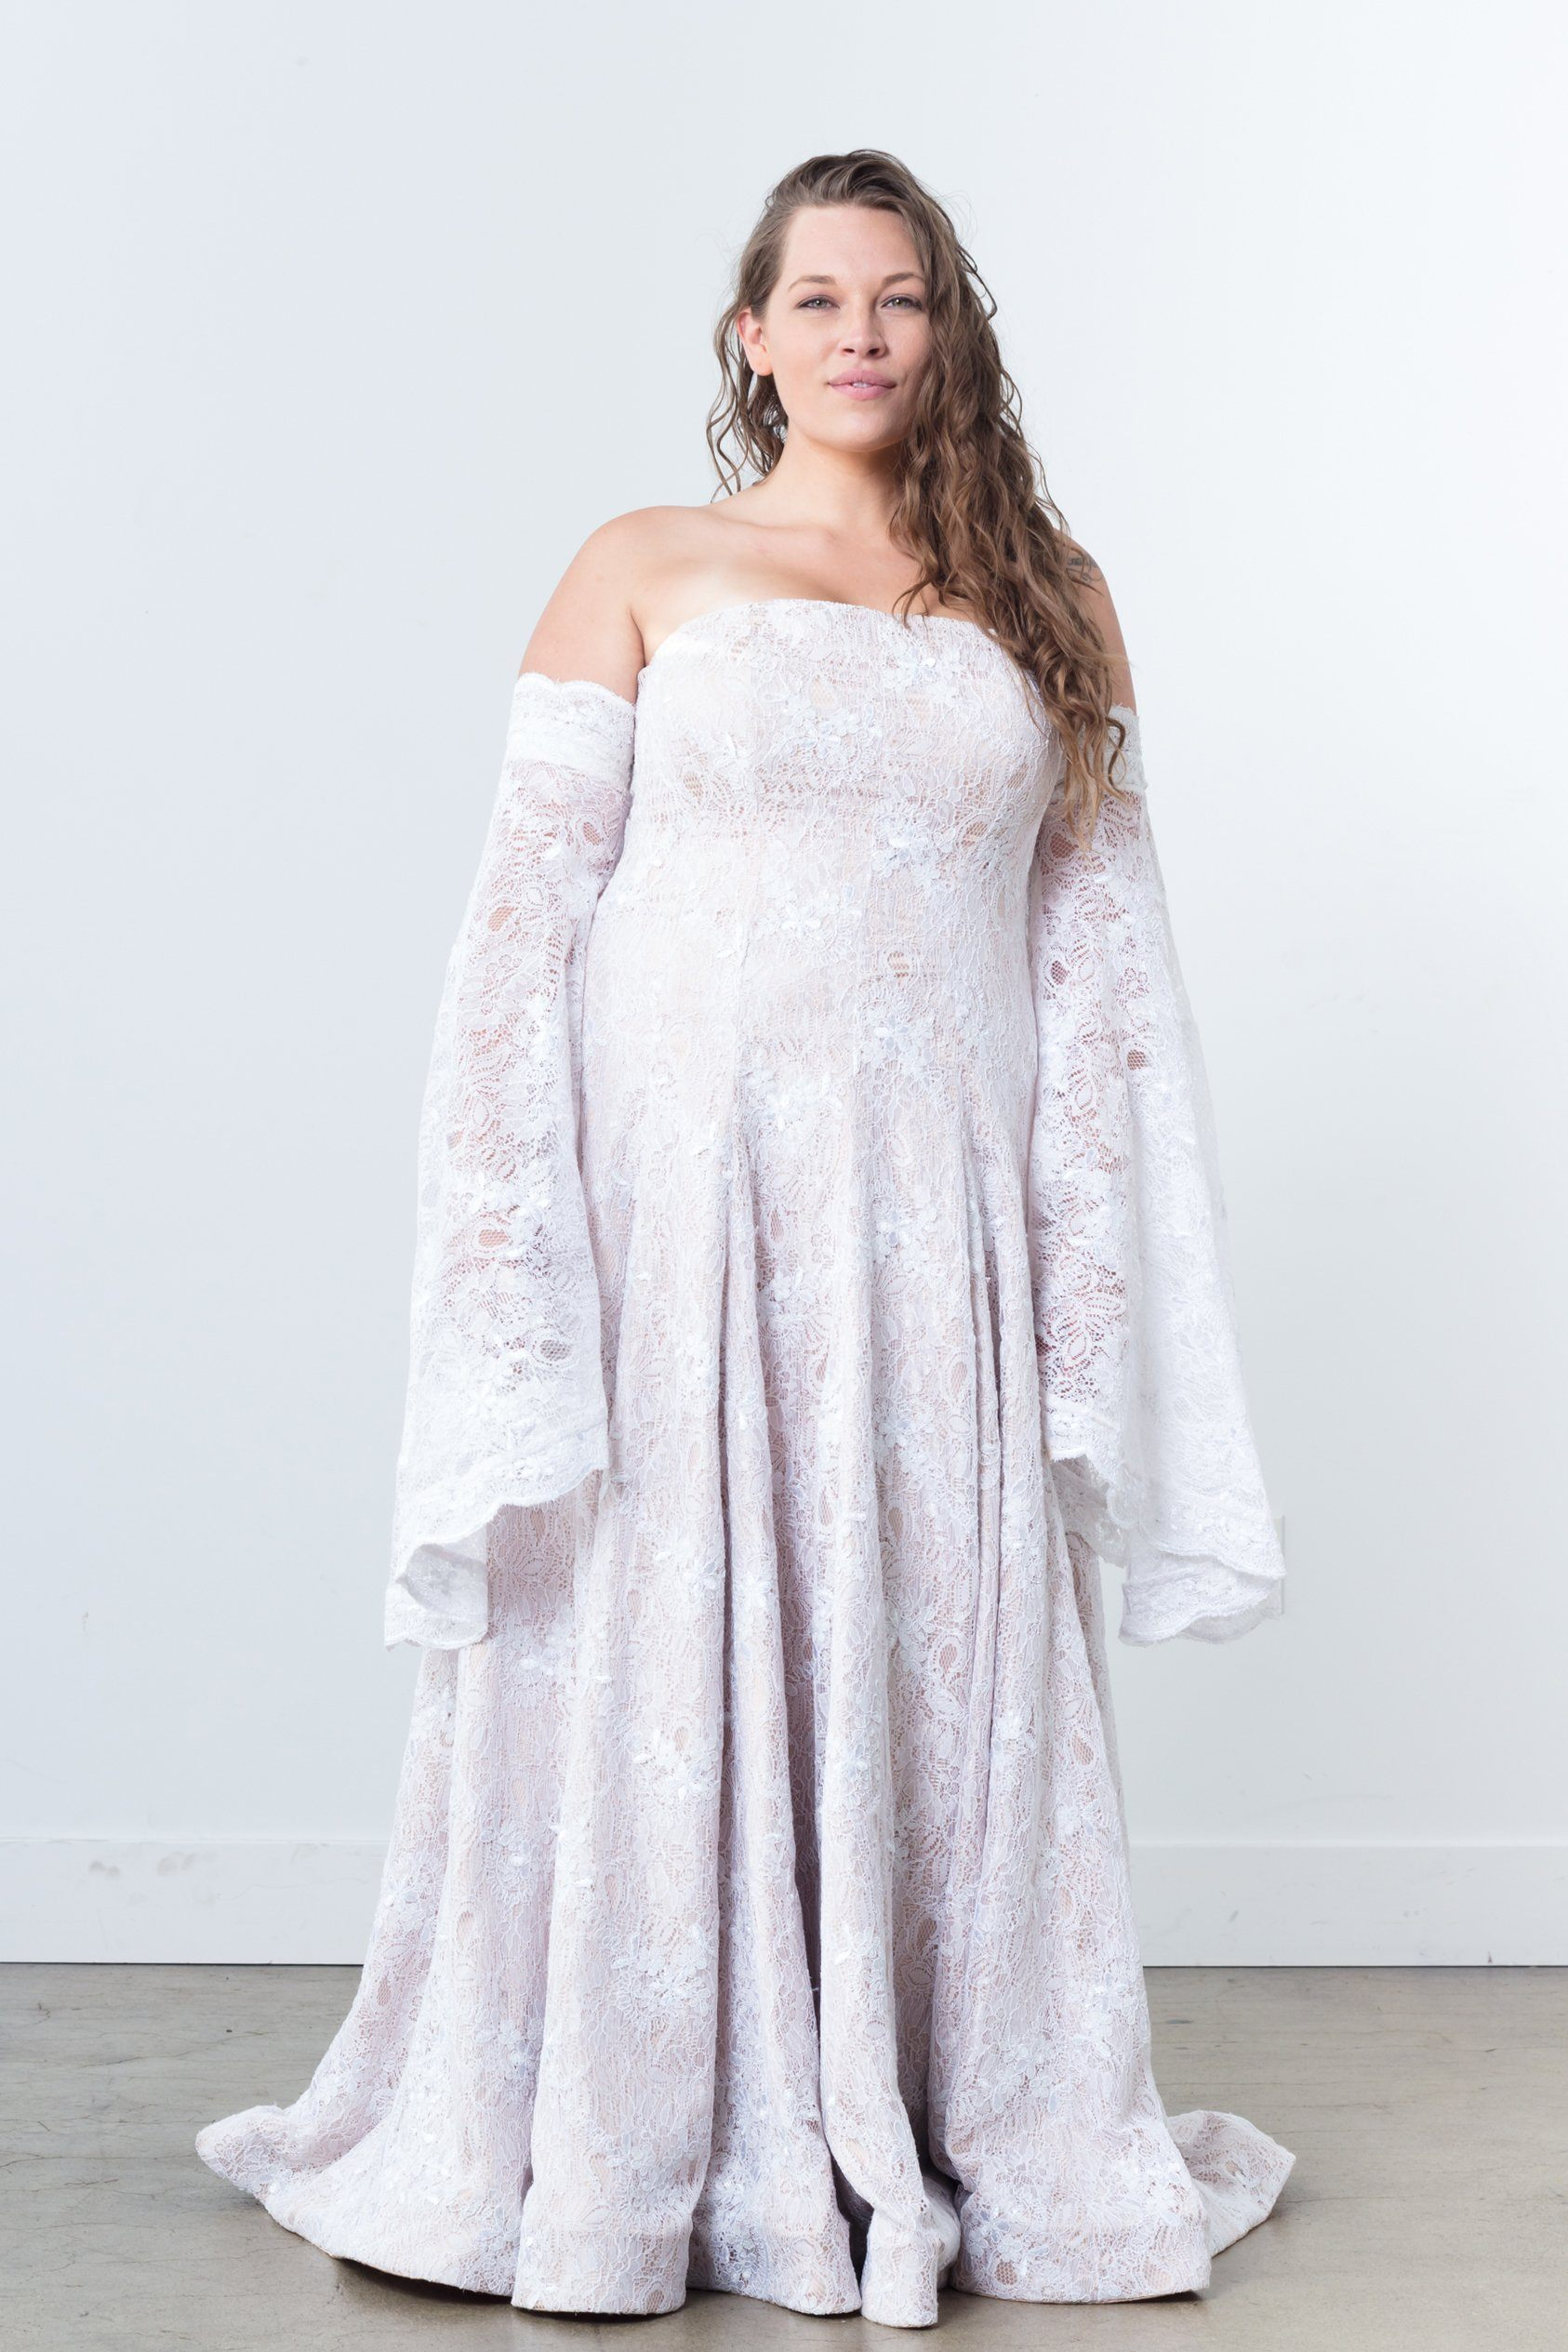 Nerecina Plus Size Boheme Gown Bridal Formalwear Made in LA Nude Lace See through gown shoulderless